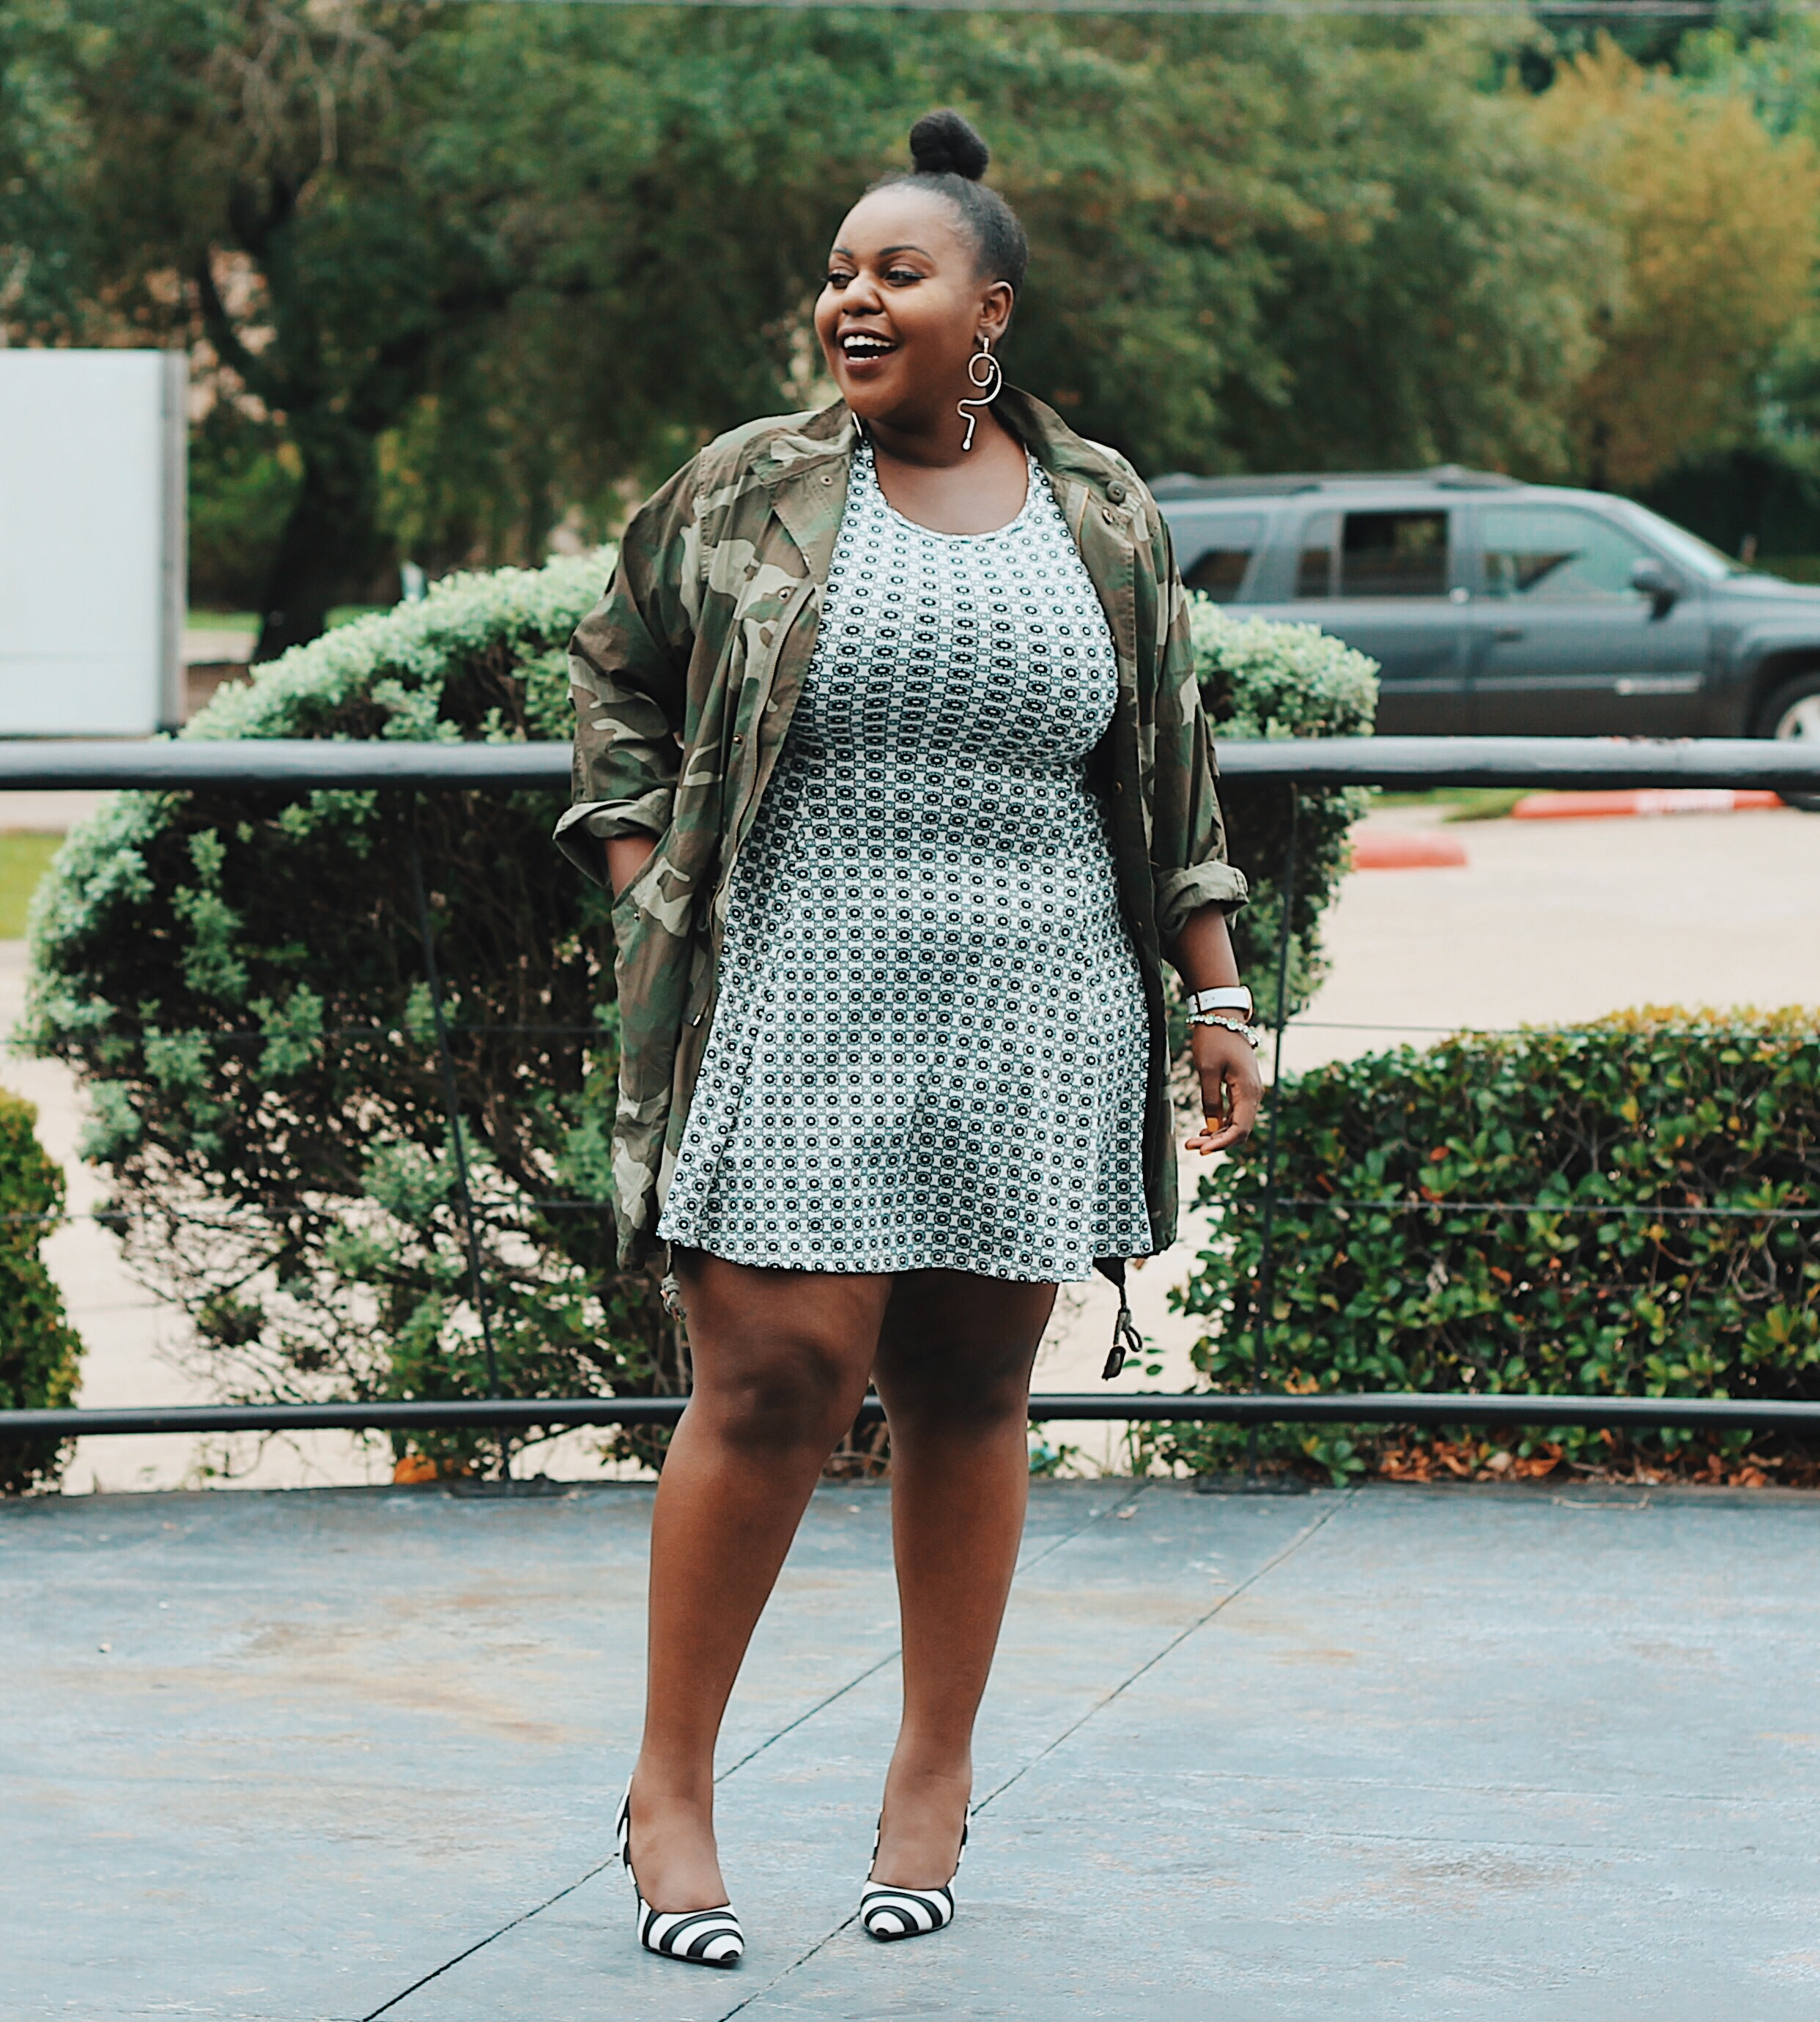 plus size fashion blogs 2017, beautiful curvy girls,how to fill the eye brow of a dark skin,beautiful plus size dark skin girls, plus size black bloggers, clothes for curvy girls, curvy girl fashion clothing, plus blog, plus size fashion tips, plus size women blog, curvy women fashion, plus blog, curvy girl fashion blog, style plus curves, plus size fashion instagram, curvy girl blog, bbw blog, plus size street fashion, plus size beauty blog, plus size fashion ideas, curvy girl summer outfits, plus size fashion magazine, plus fashion bloggers, boohoo, rebdolls bodycon maxi dresses, plus size camouflage jacket